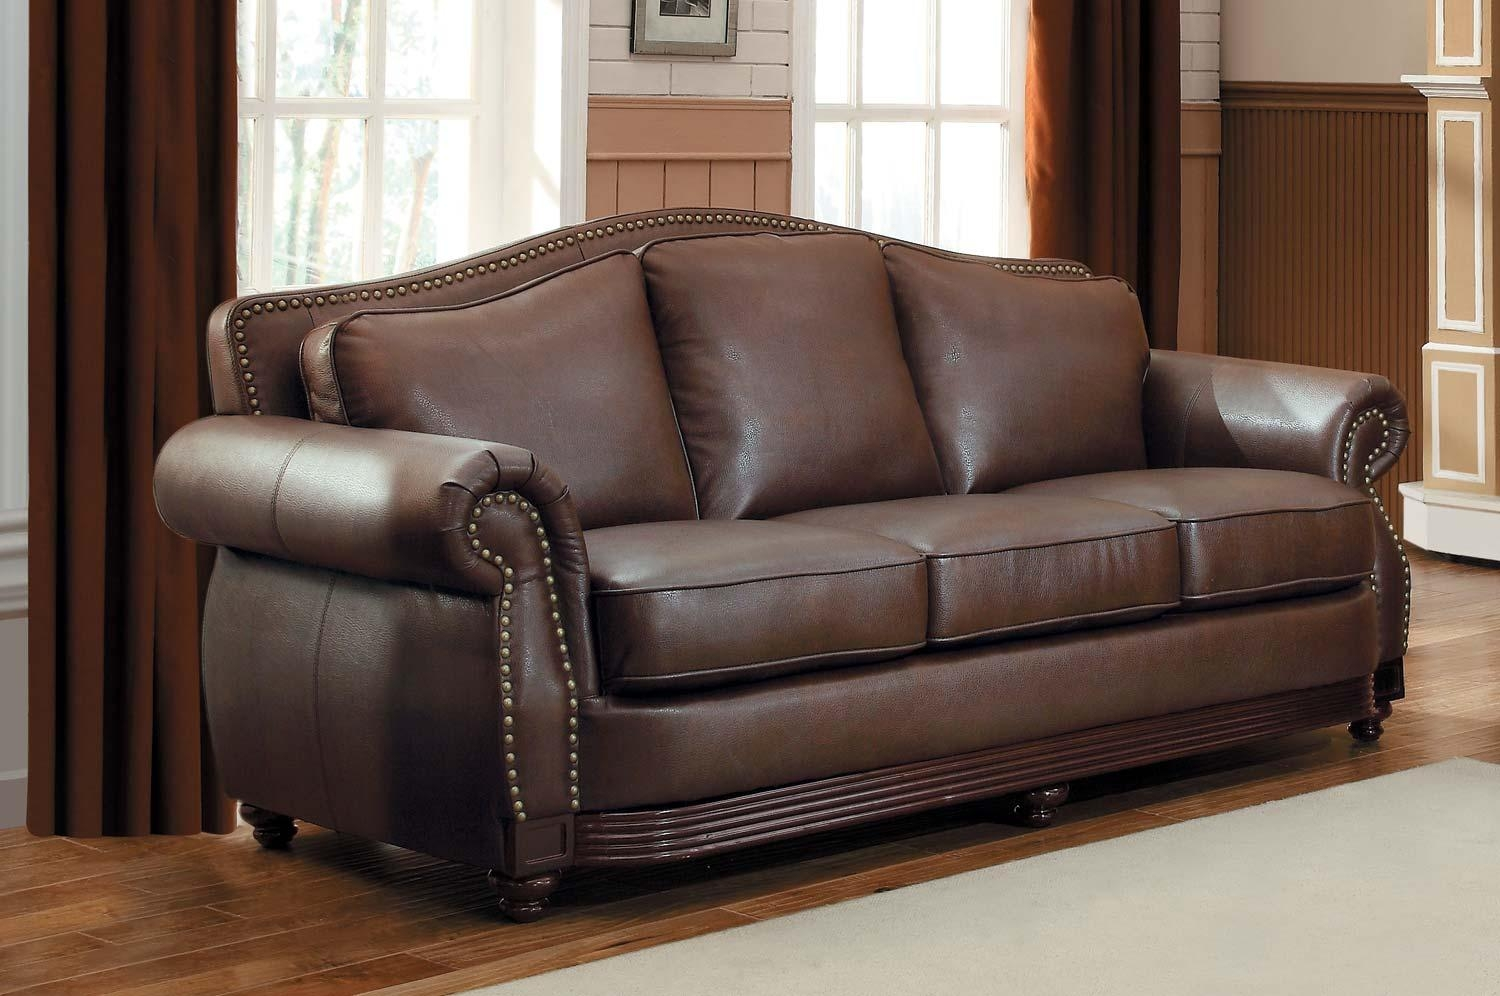 Sofas Center : Camelbackther Sofa 0002529 Josephine Wood With Brown Leather Sofas With Nailhead Trim (Image 17 of 20)